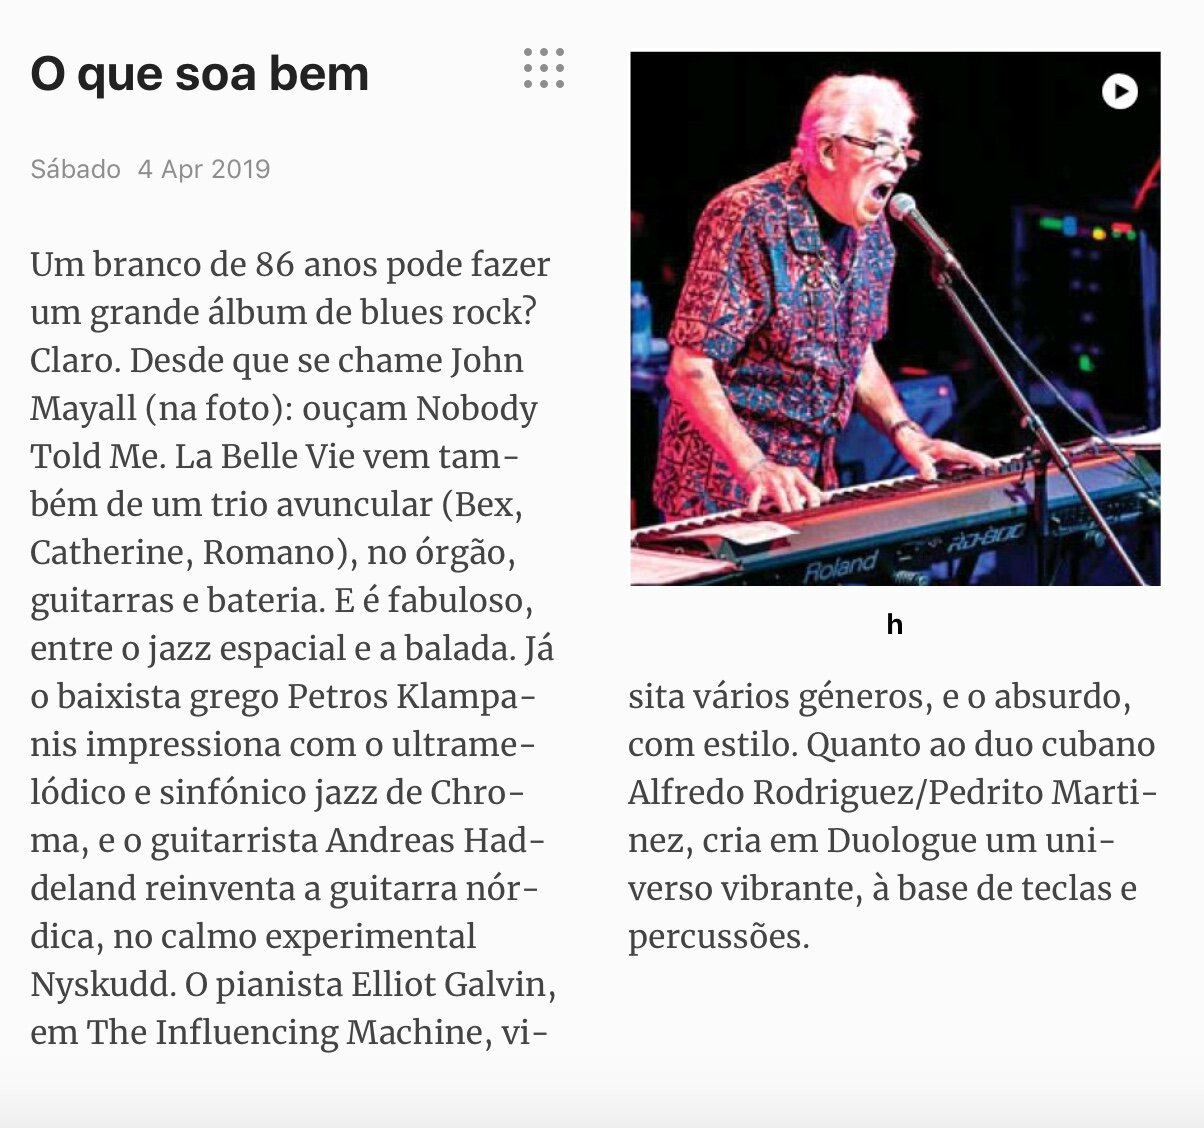 From the Portuguese journal Sabado